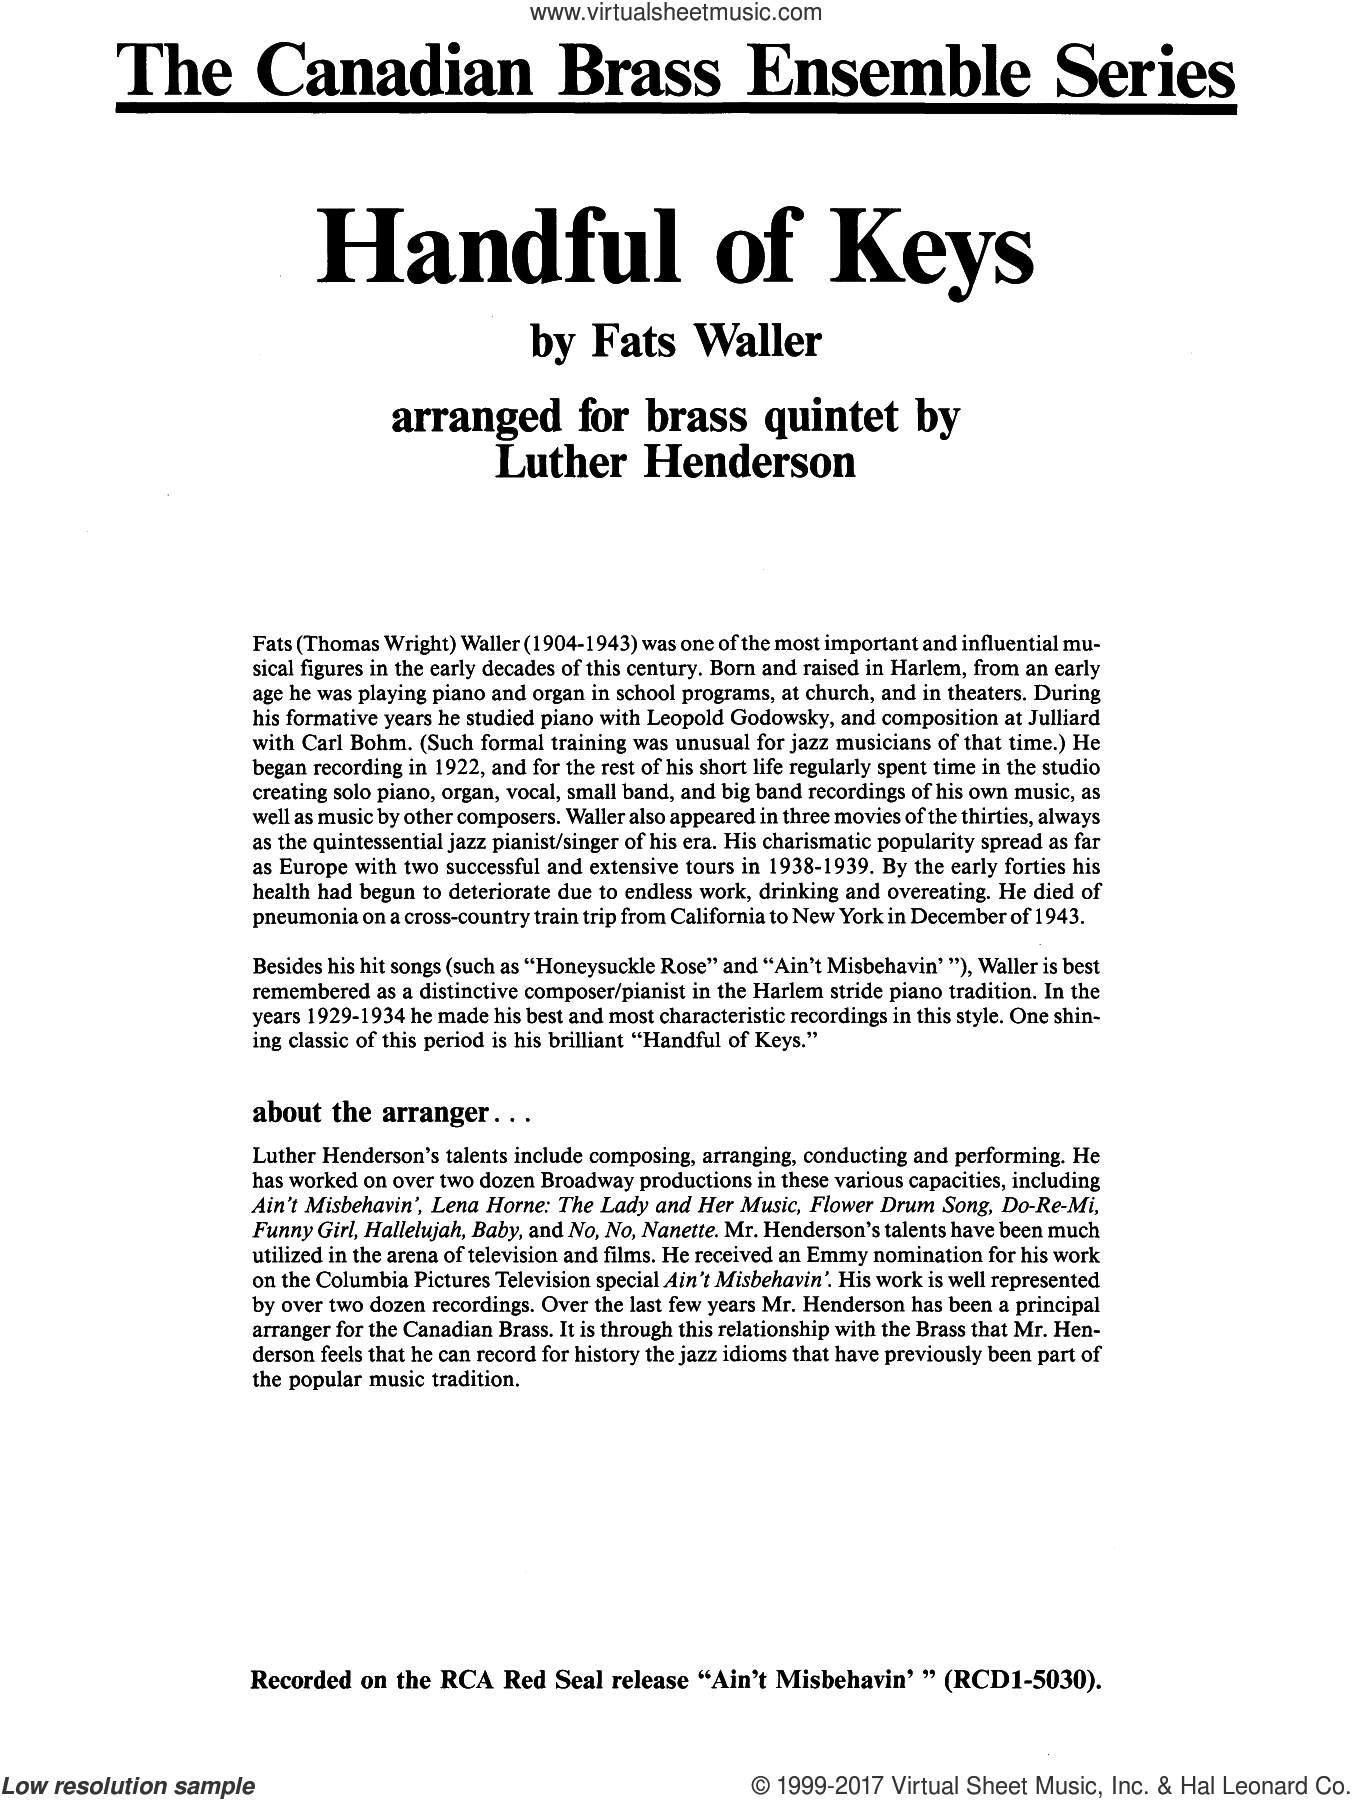 Handful of Keys (COMPLETE) sheet music for brass quintet by Fats Waller, Luther Henderson and Thomas Waller, intermediate skill level